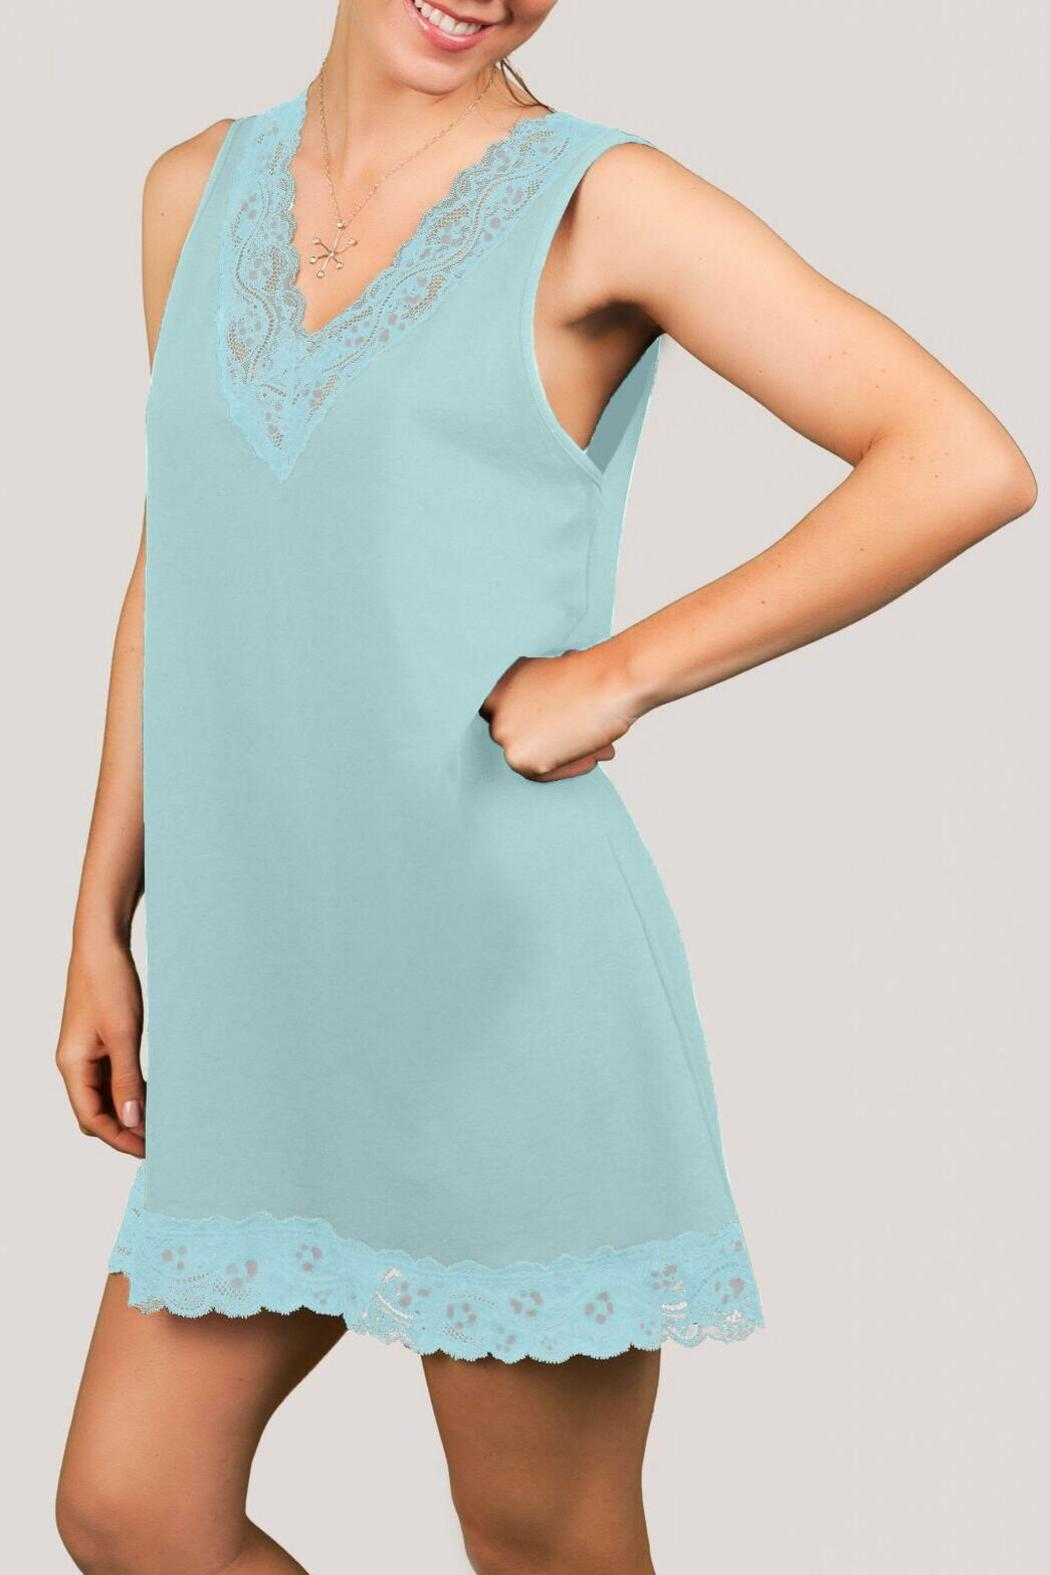 0d469df73fd28 Knock Out! Lacy Chemis Nightgown from Canada by Gaia Boutique ...